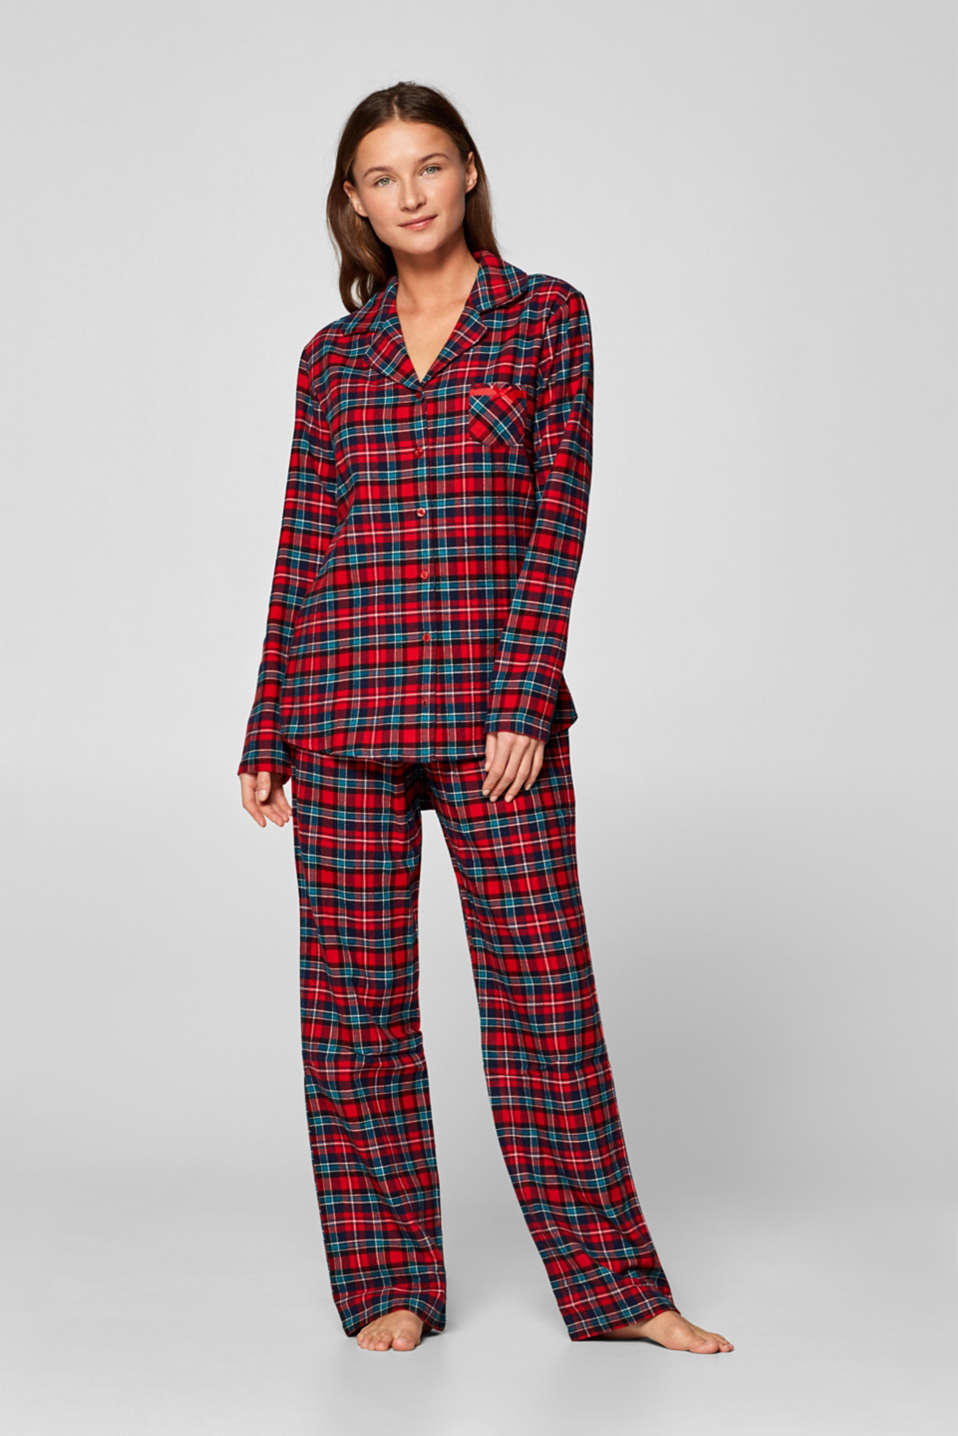 1032a4e7e6 Esprit - Checked flannel pyjamas, 100% cotton at our Online Shop